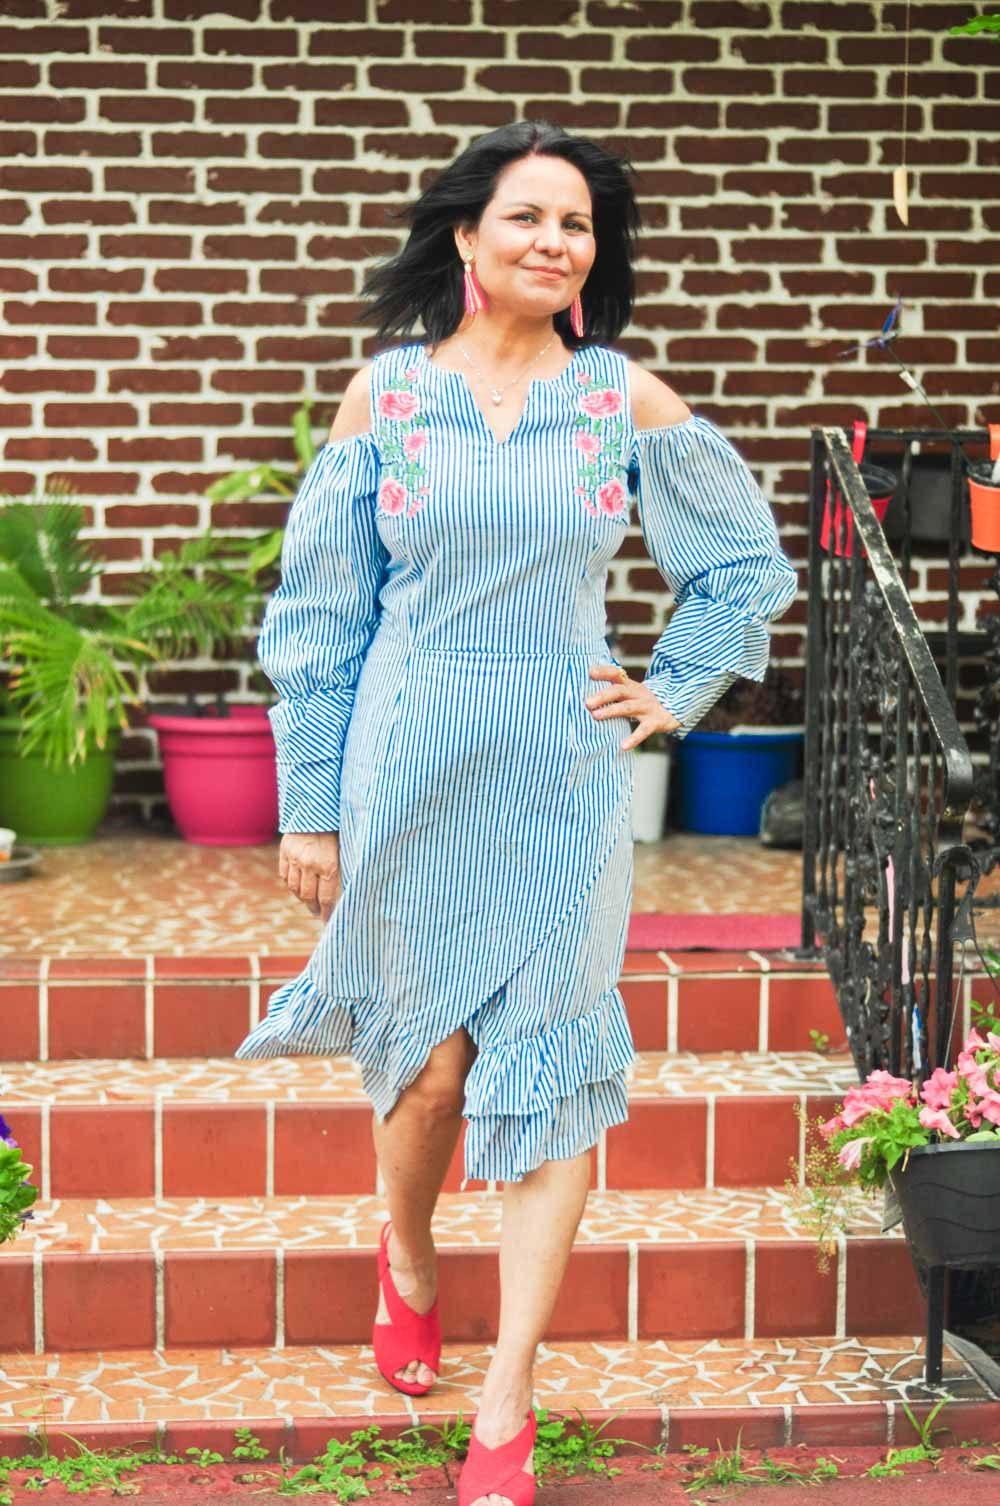 blue striped dress and statement earrings for spring or summer outfit